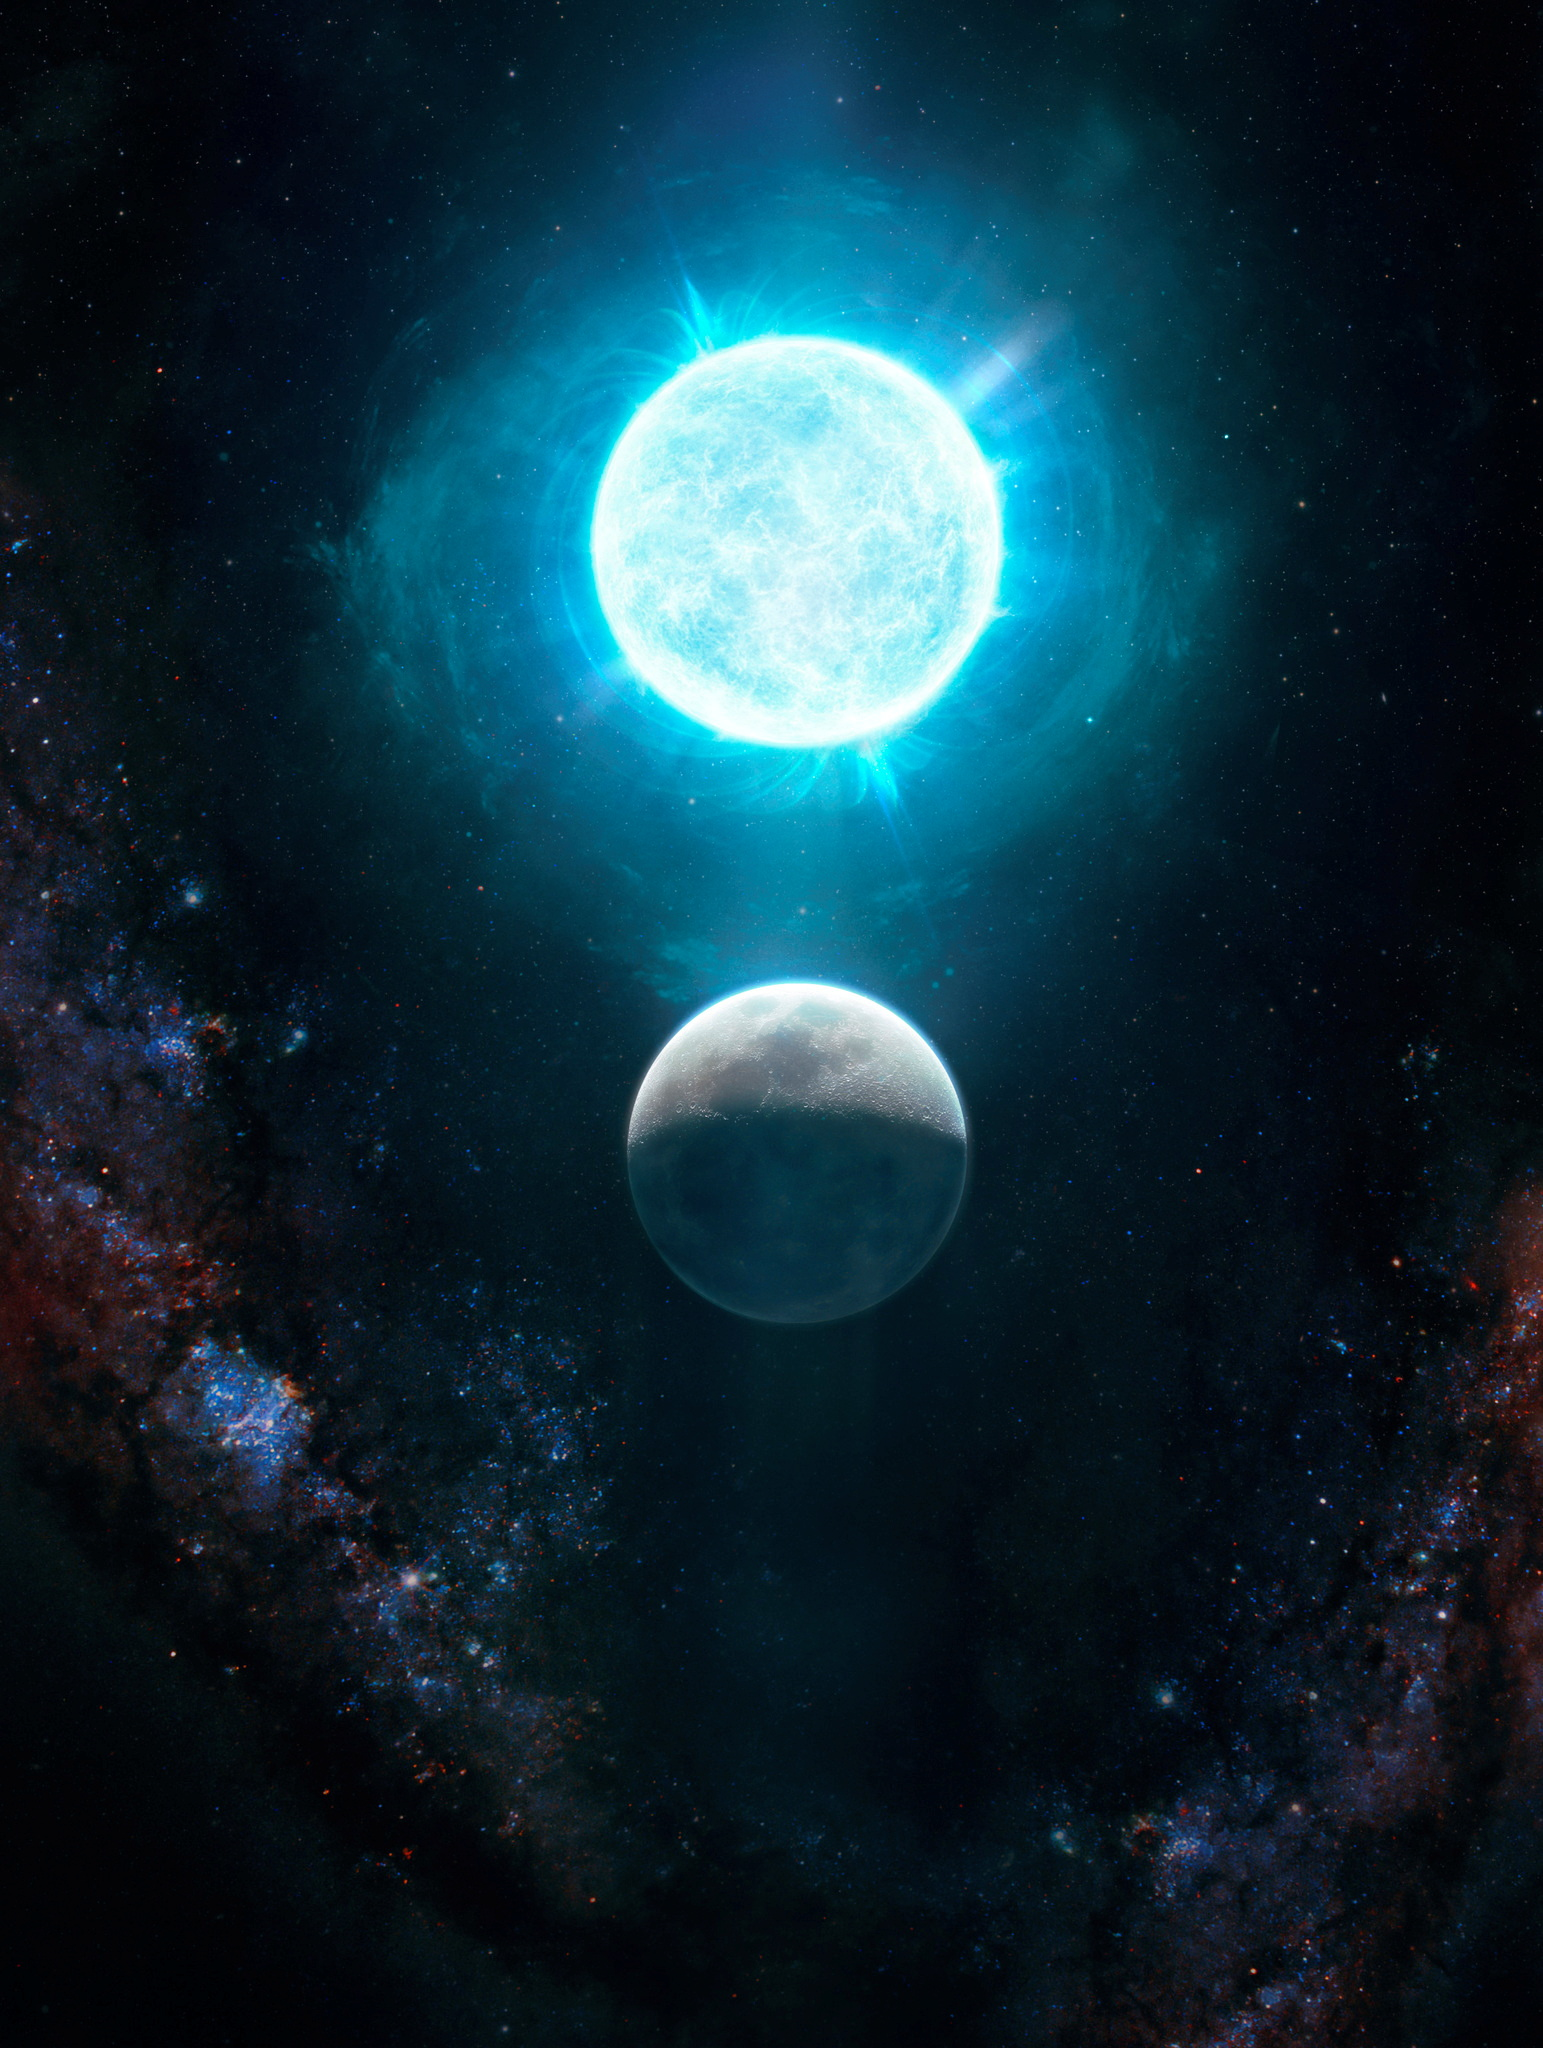 A newfound small white dwarf, called ZTF J1901+1458 and located 130 light-years from Earth, that is slightly larger than the size of the moon in diameter but 1.35 times the mass of our sun, making it both the smallest in size and largest in mass of any known white dwarf is seen in an undated illustration. It was discovered using Caltech's Palomar Observatory. Giuseppe Parisi/Handout via REUTERS